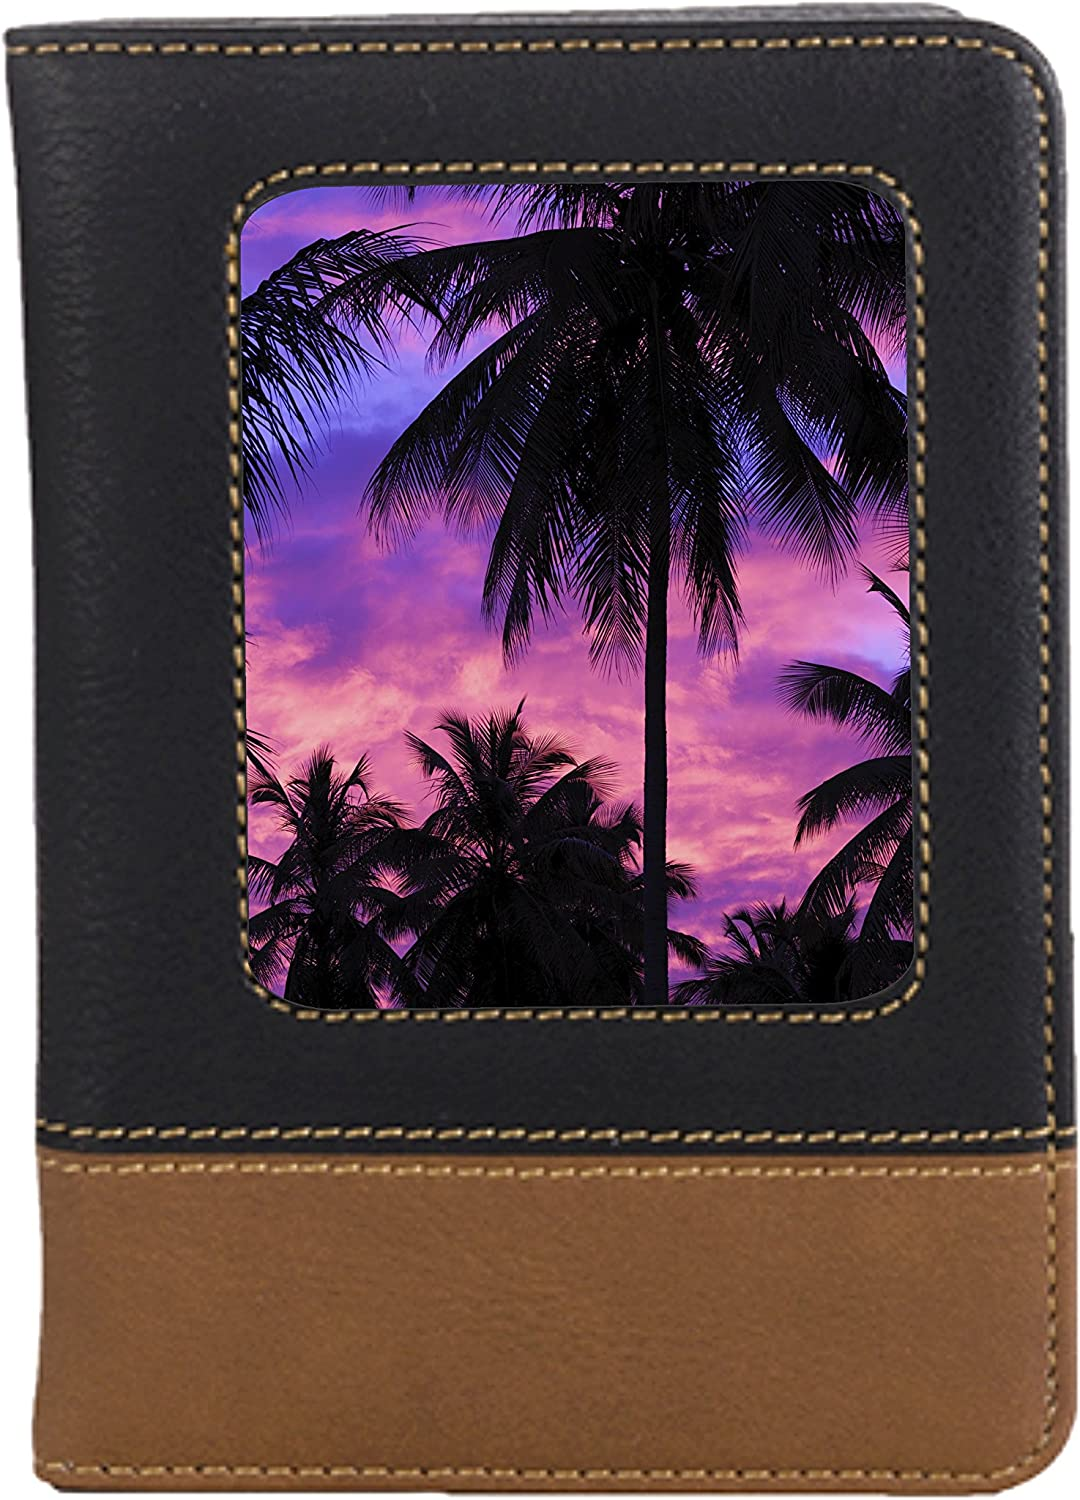 Pink Palm Tree Sunset Leatherette Passport Wallet Style Case Cover For Travel